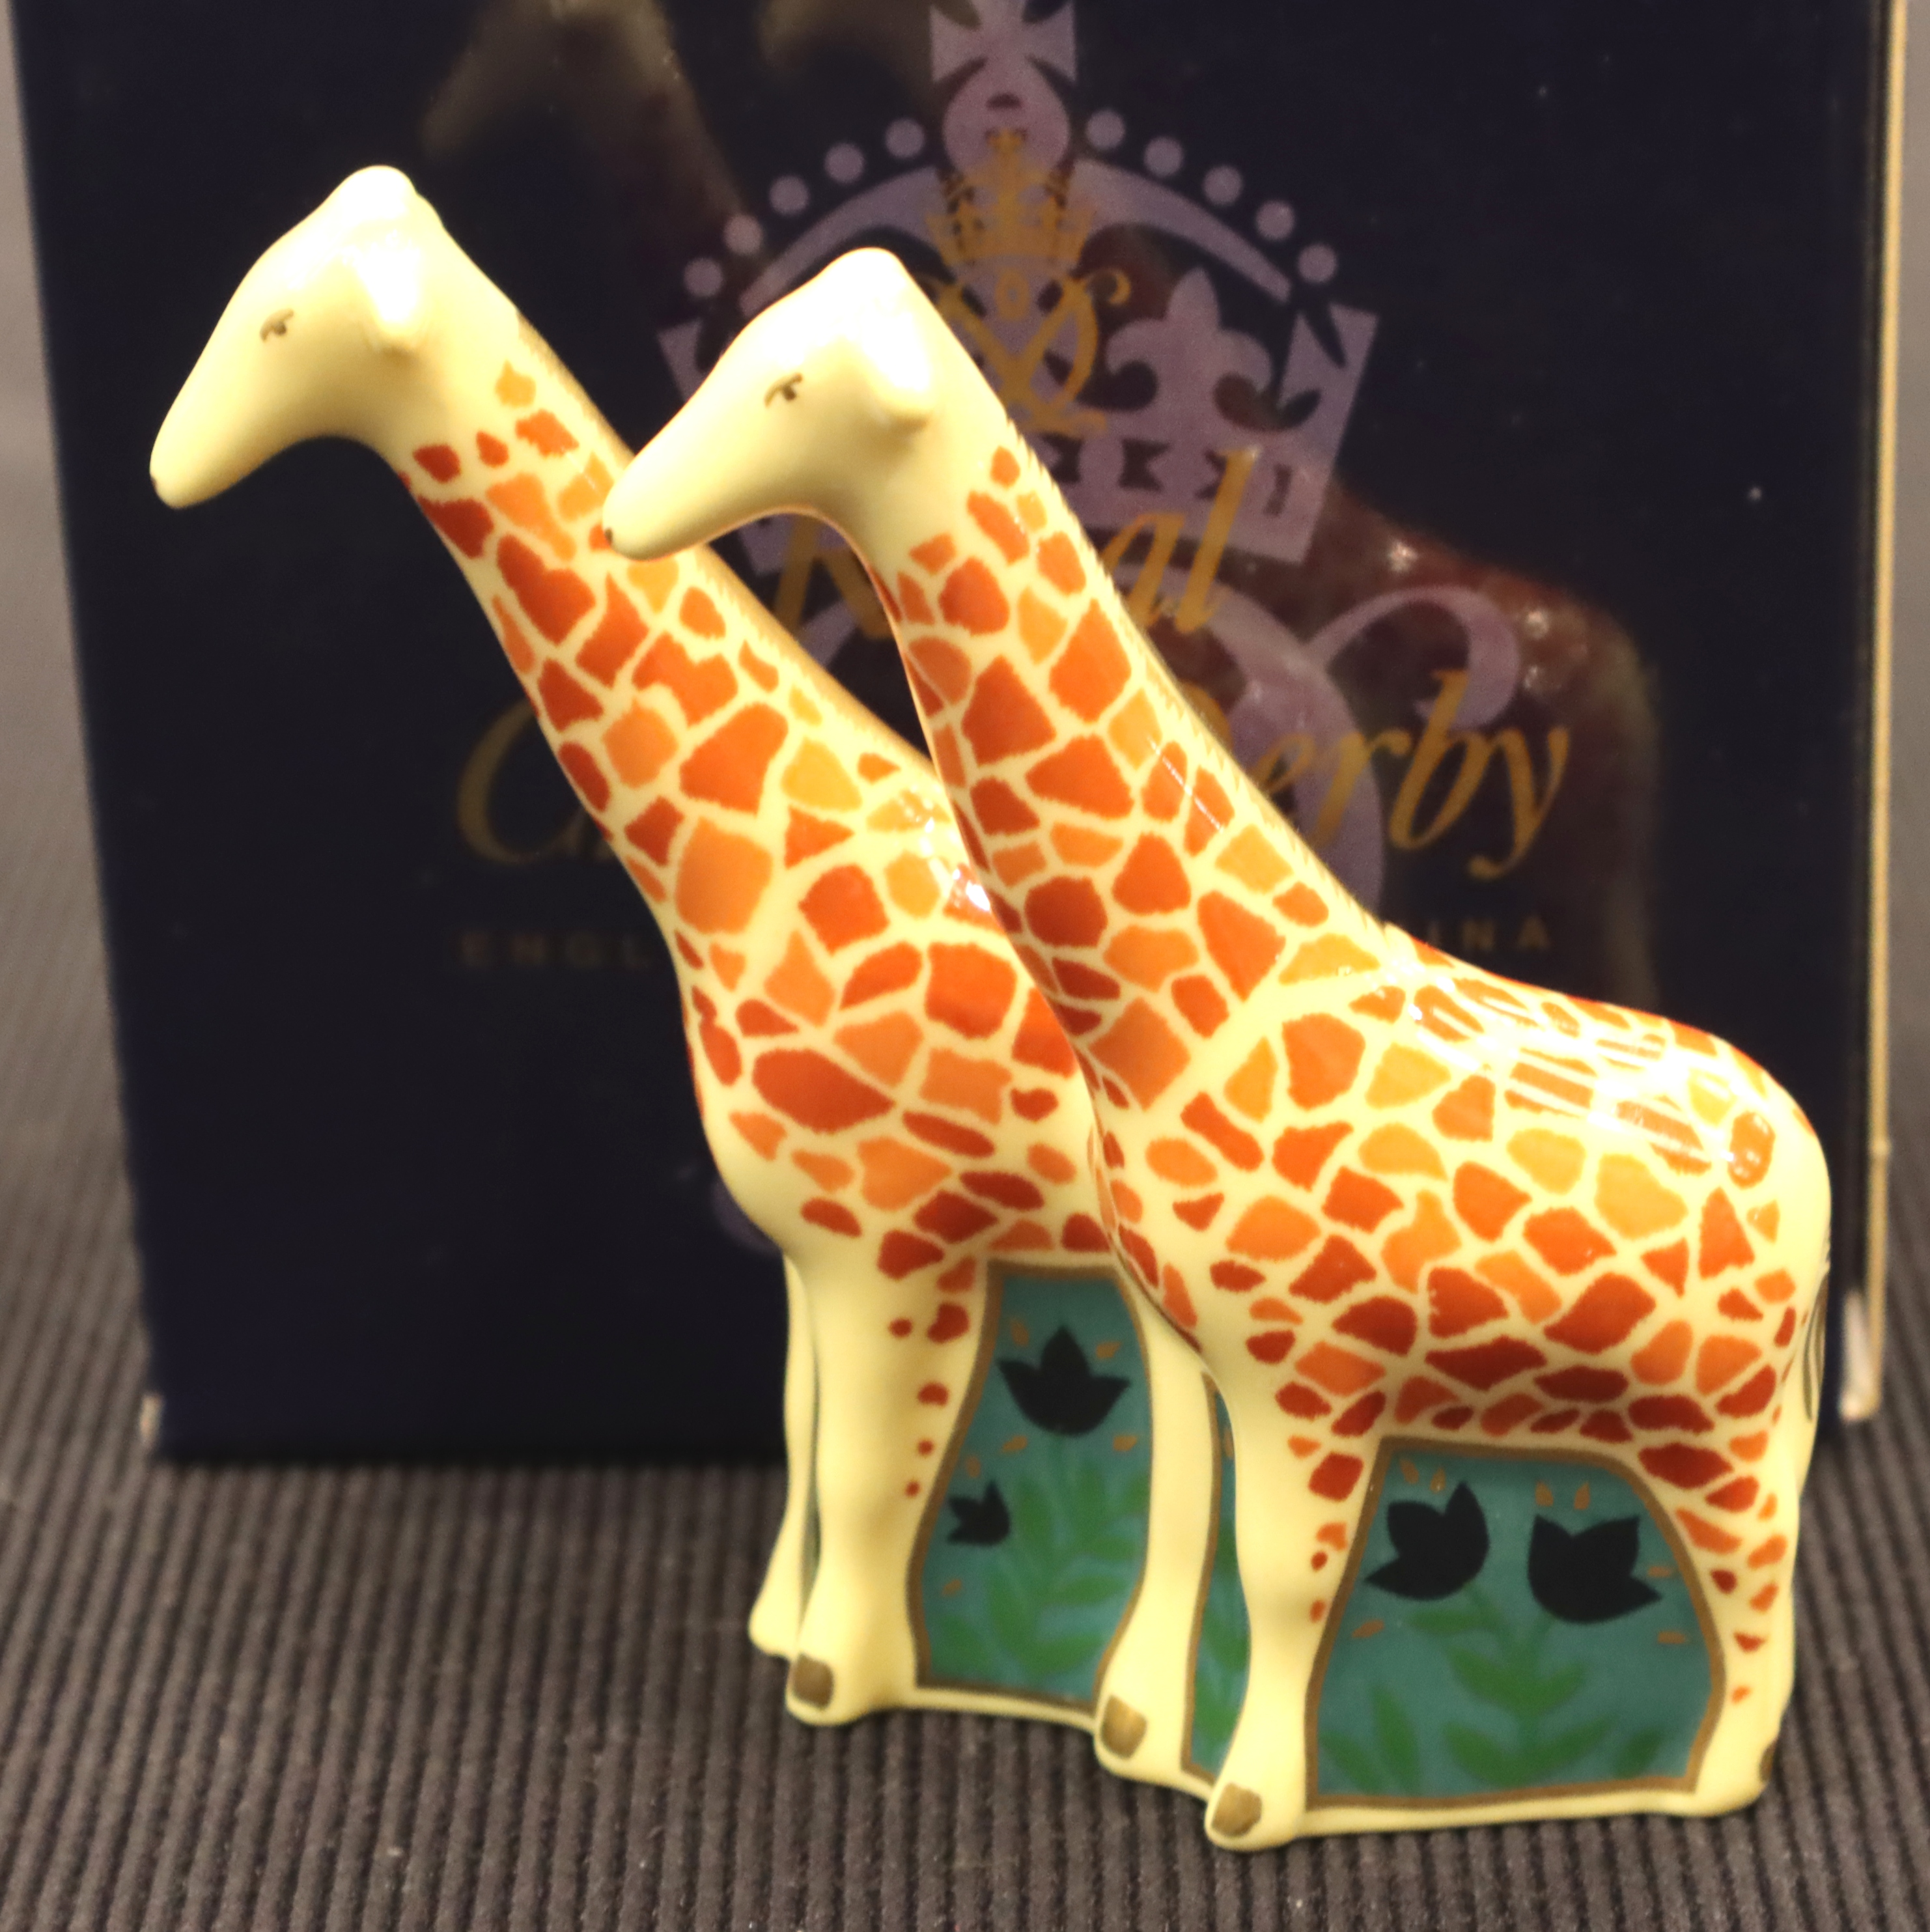 Royal Crown Derby boxed giraffes. P&P Group 1 (£14+VAT for the first lot and £1+VAT for subsequent